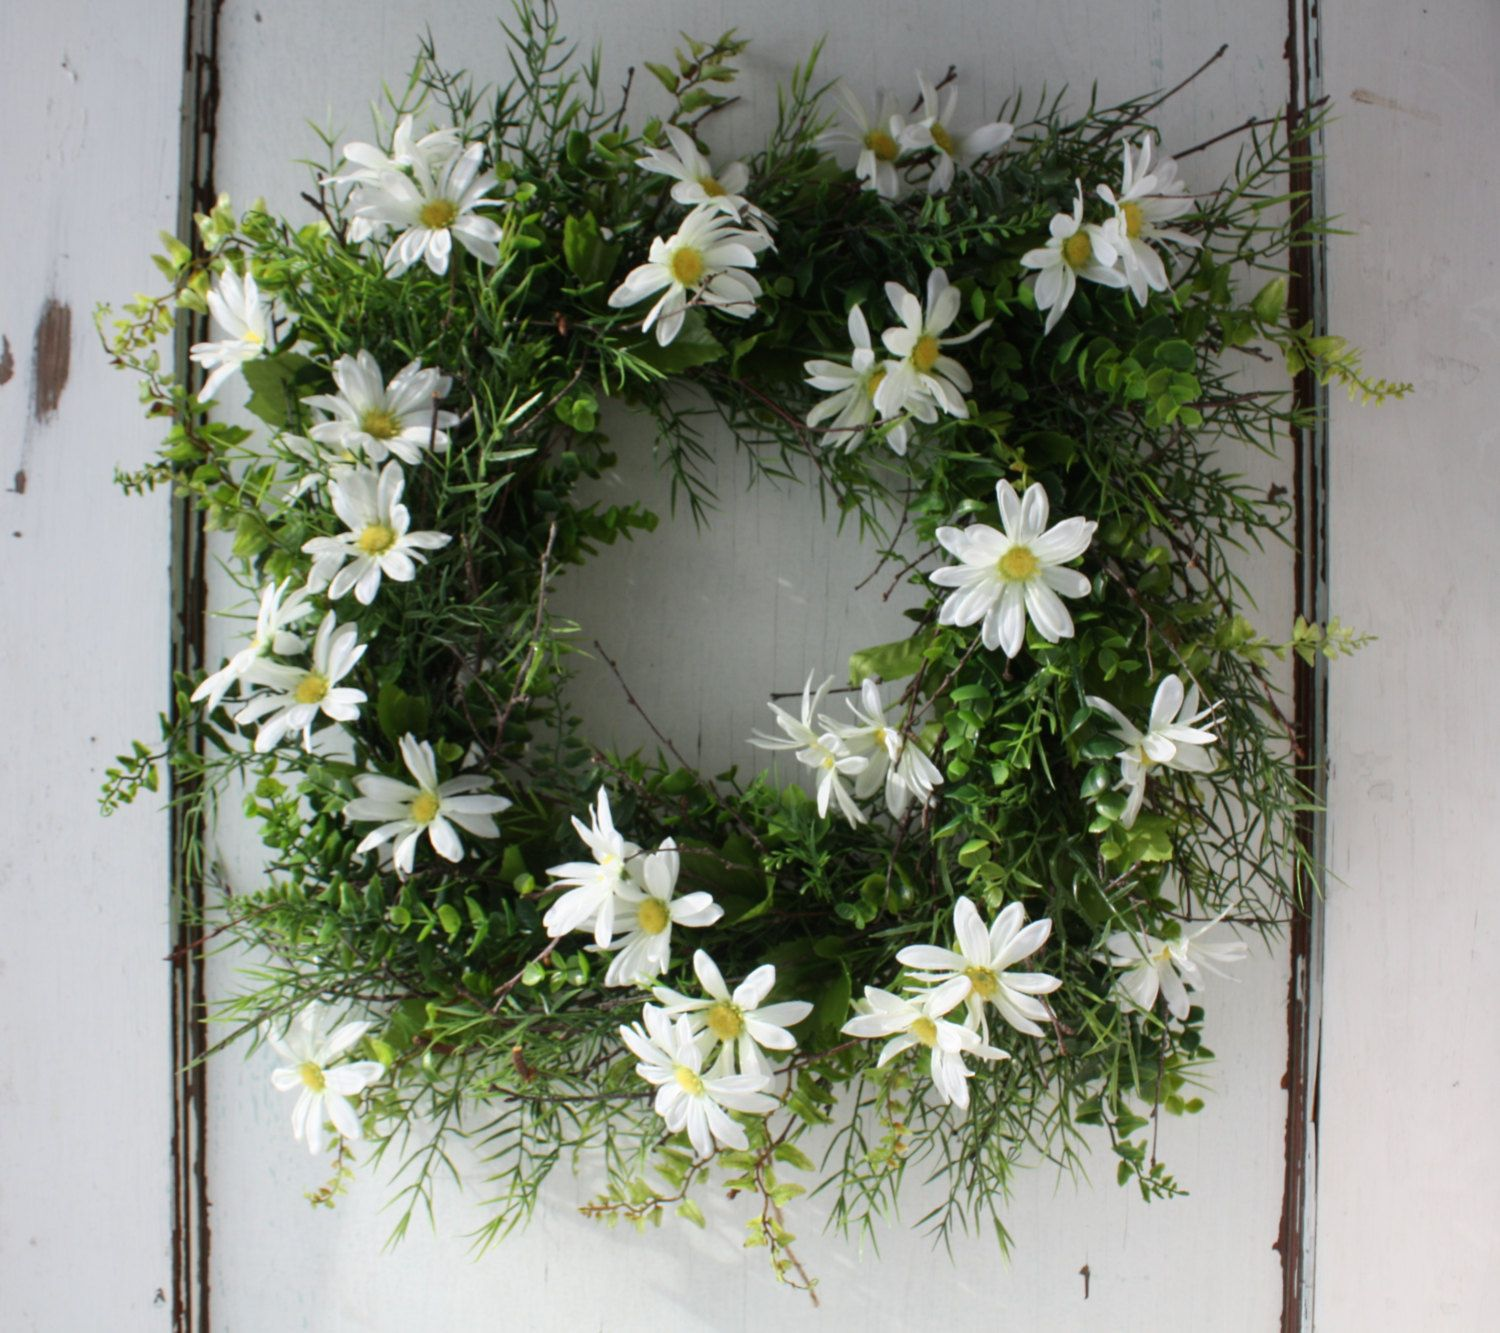 Square Daisy Wreath - Boxwood Wreath - Spring Wreath - Easter Wreath - 18 inch Boxwood - Country Garden - Wreath for Door - Wedding Wreath by TheTangledTreehouse on Etsy